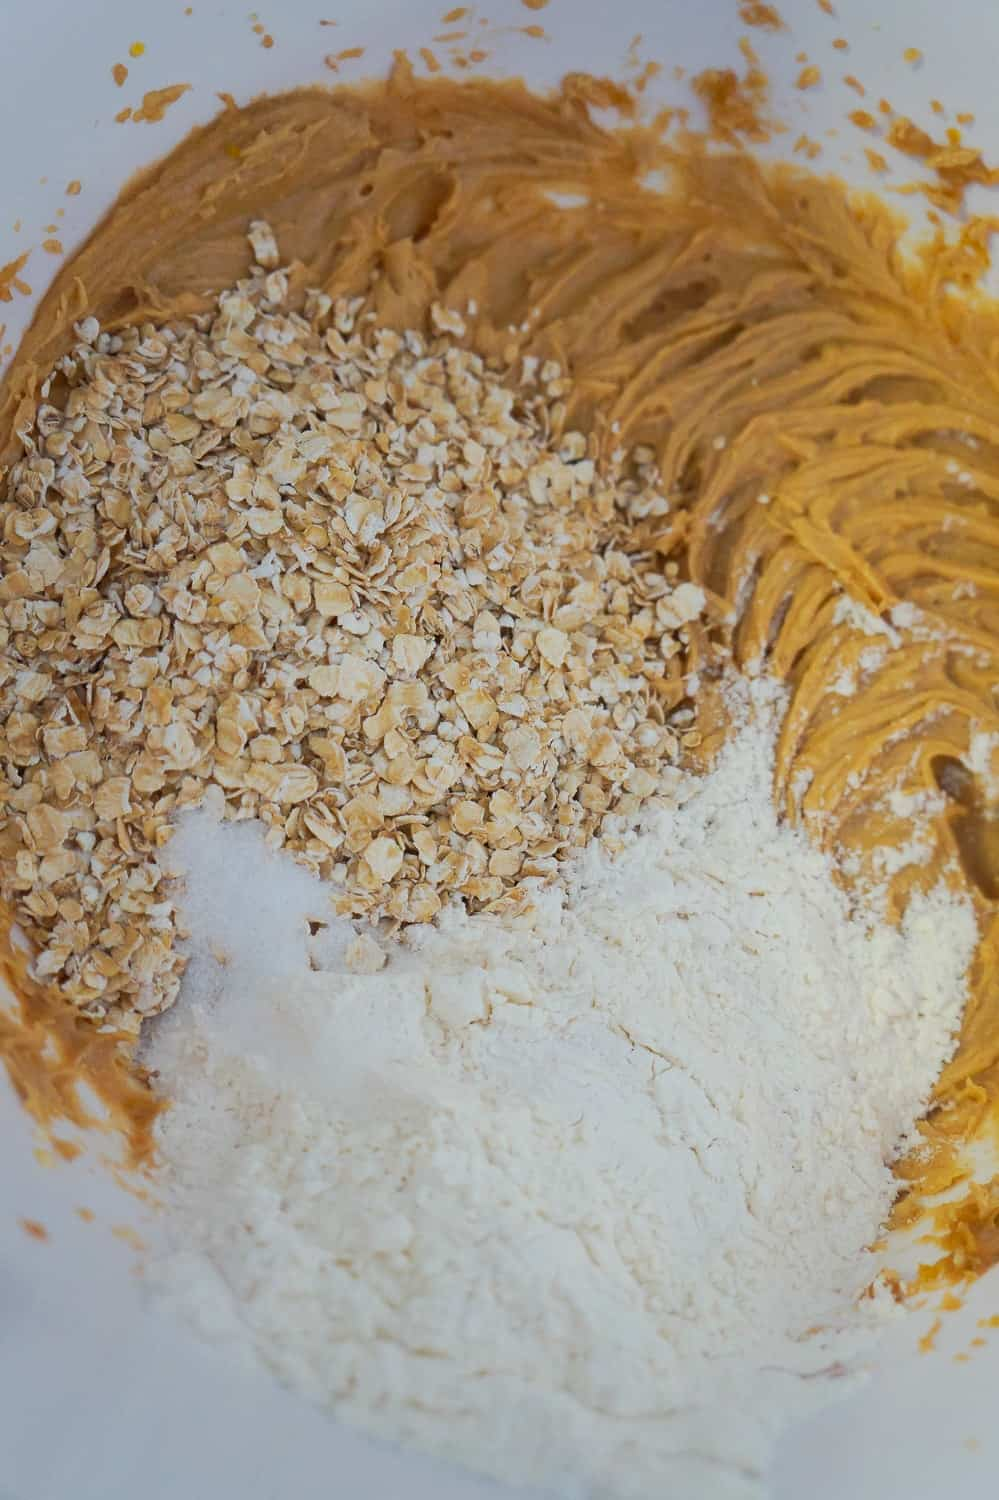 flour and oats added to peanut butter mixture in mixing bowl